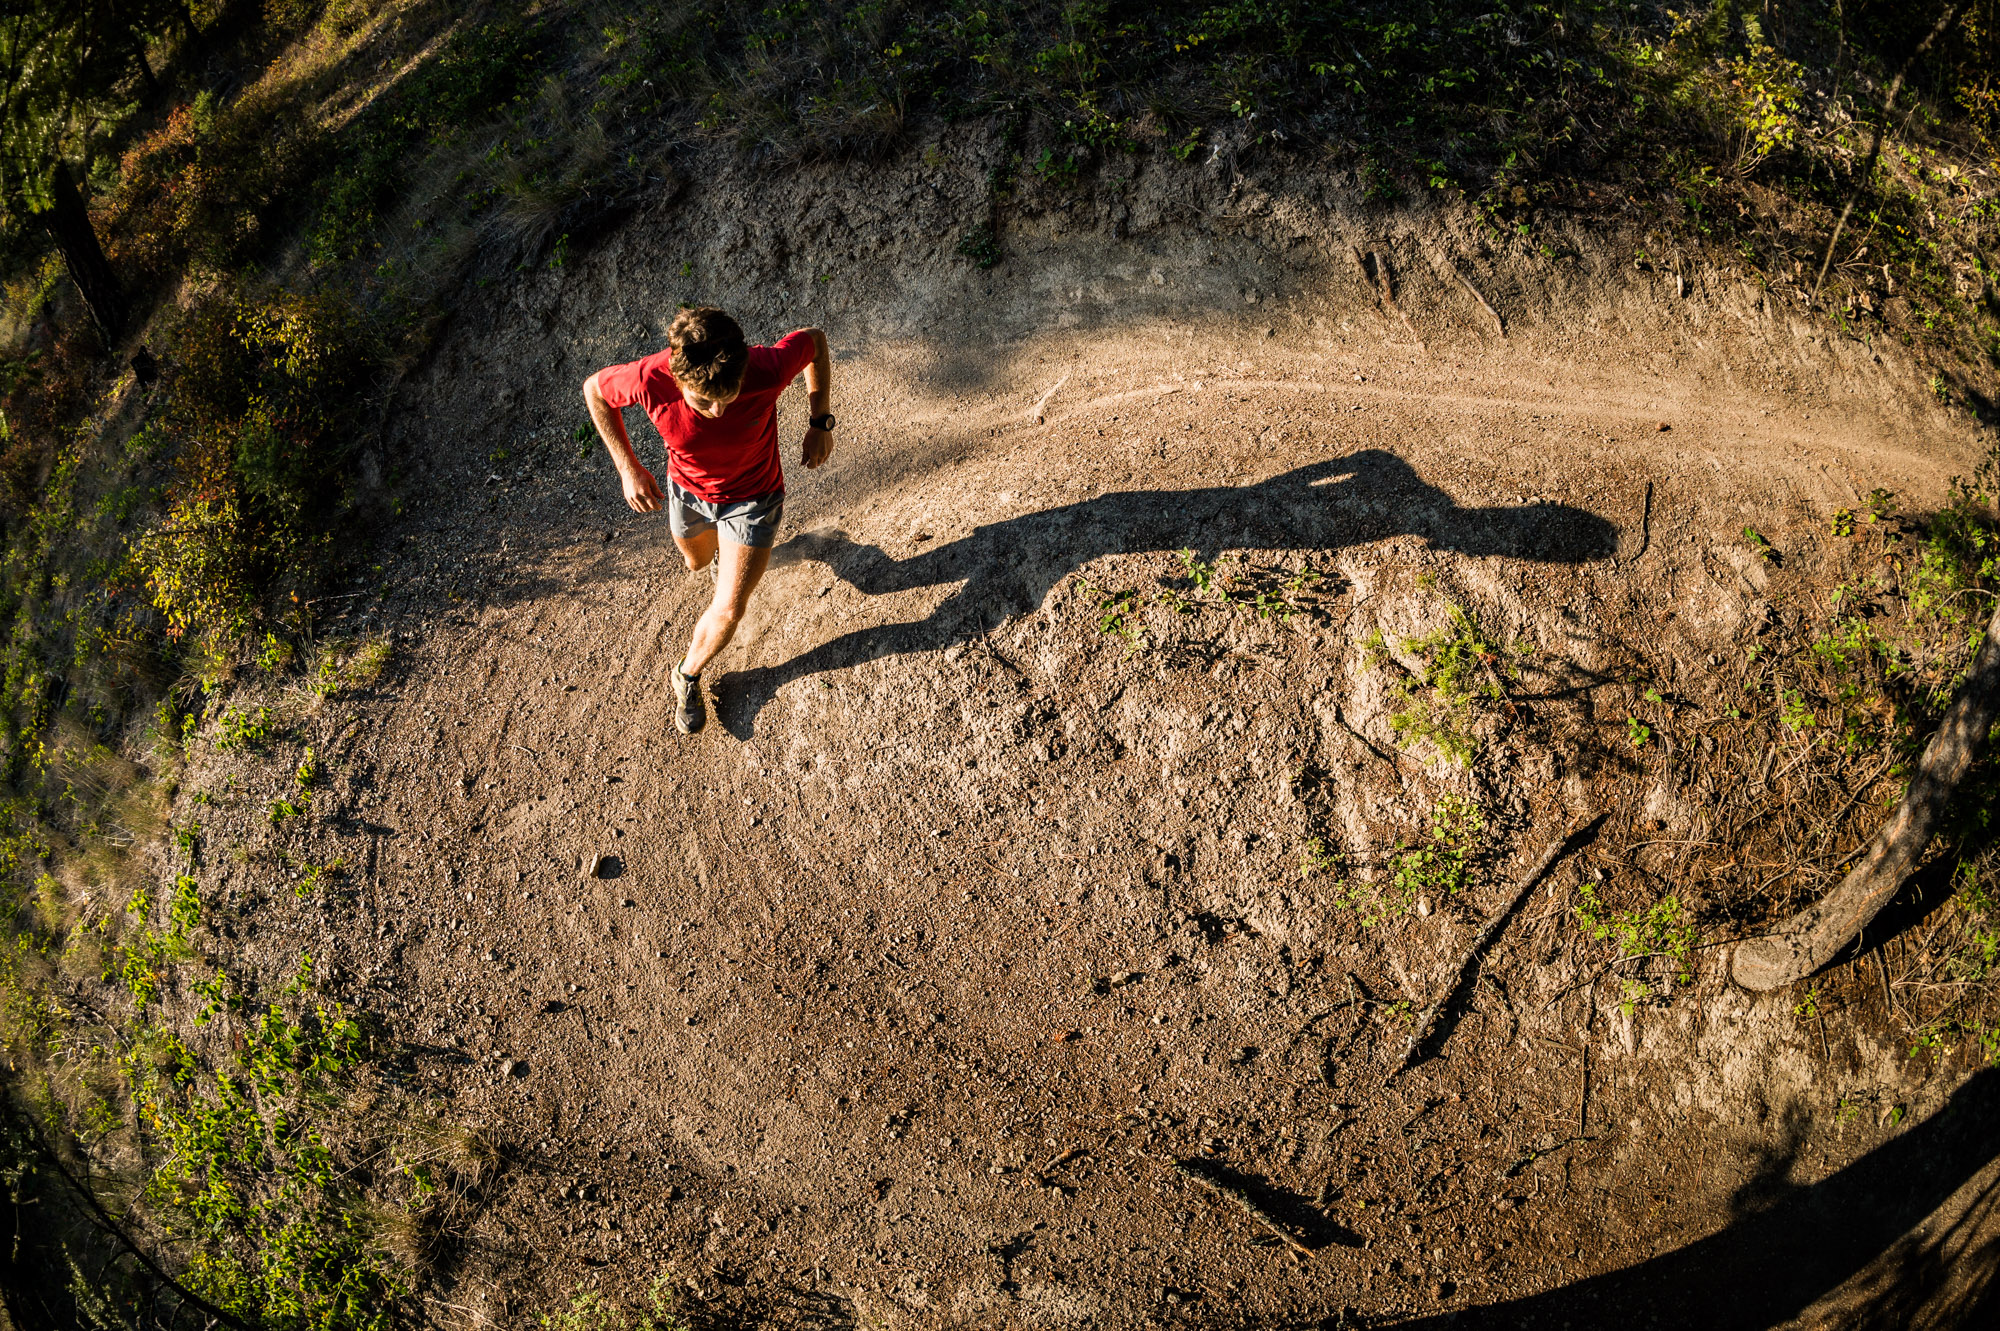 Ultra Runner Mike Foote for The North Face - Greg Mionske - Advertising and Editorial Photographer in Denver